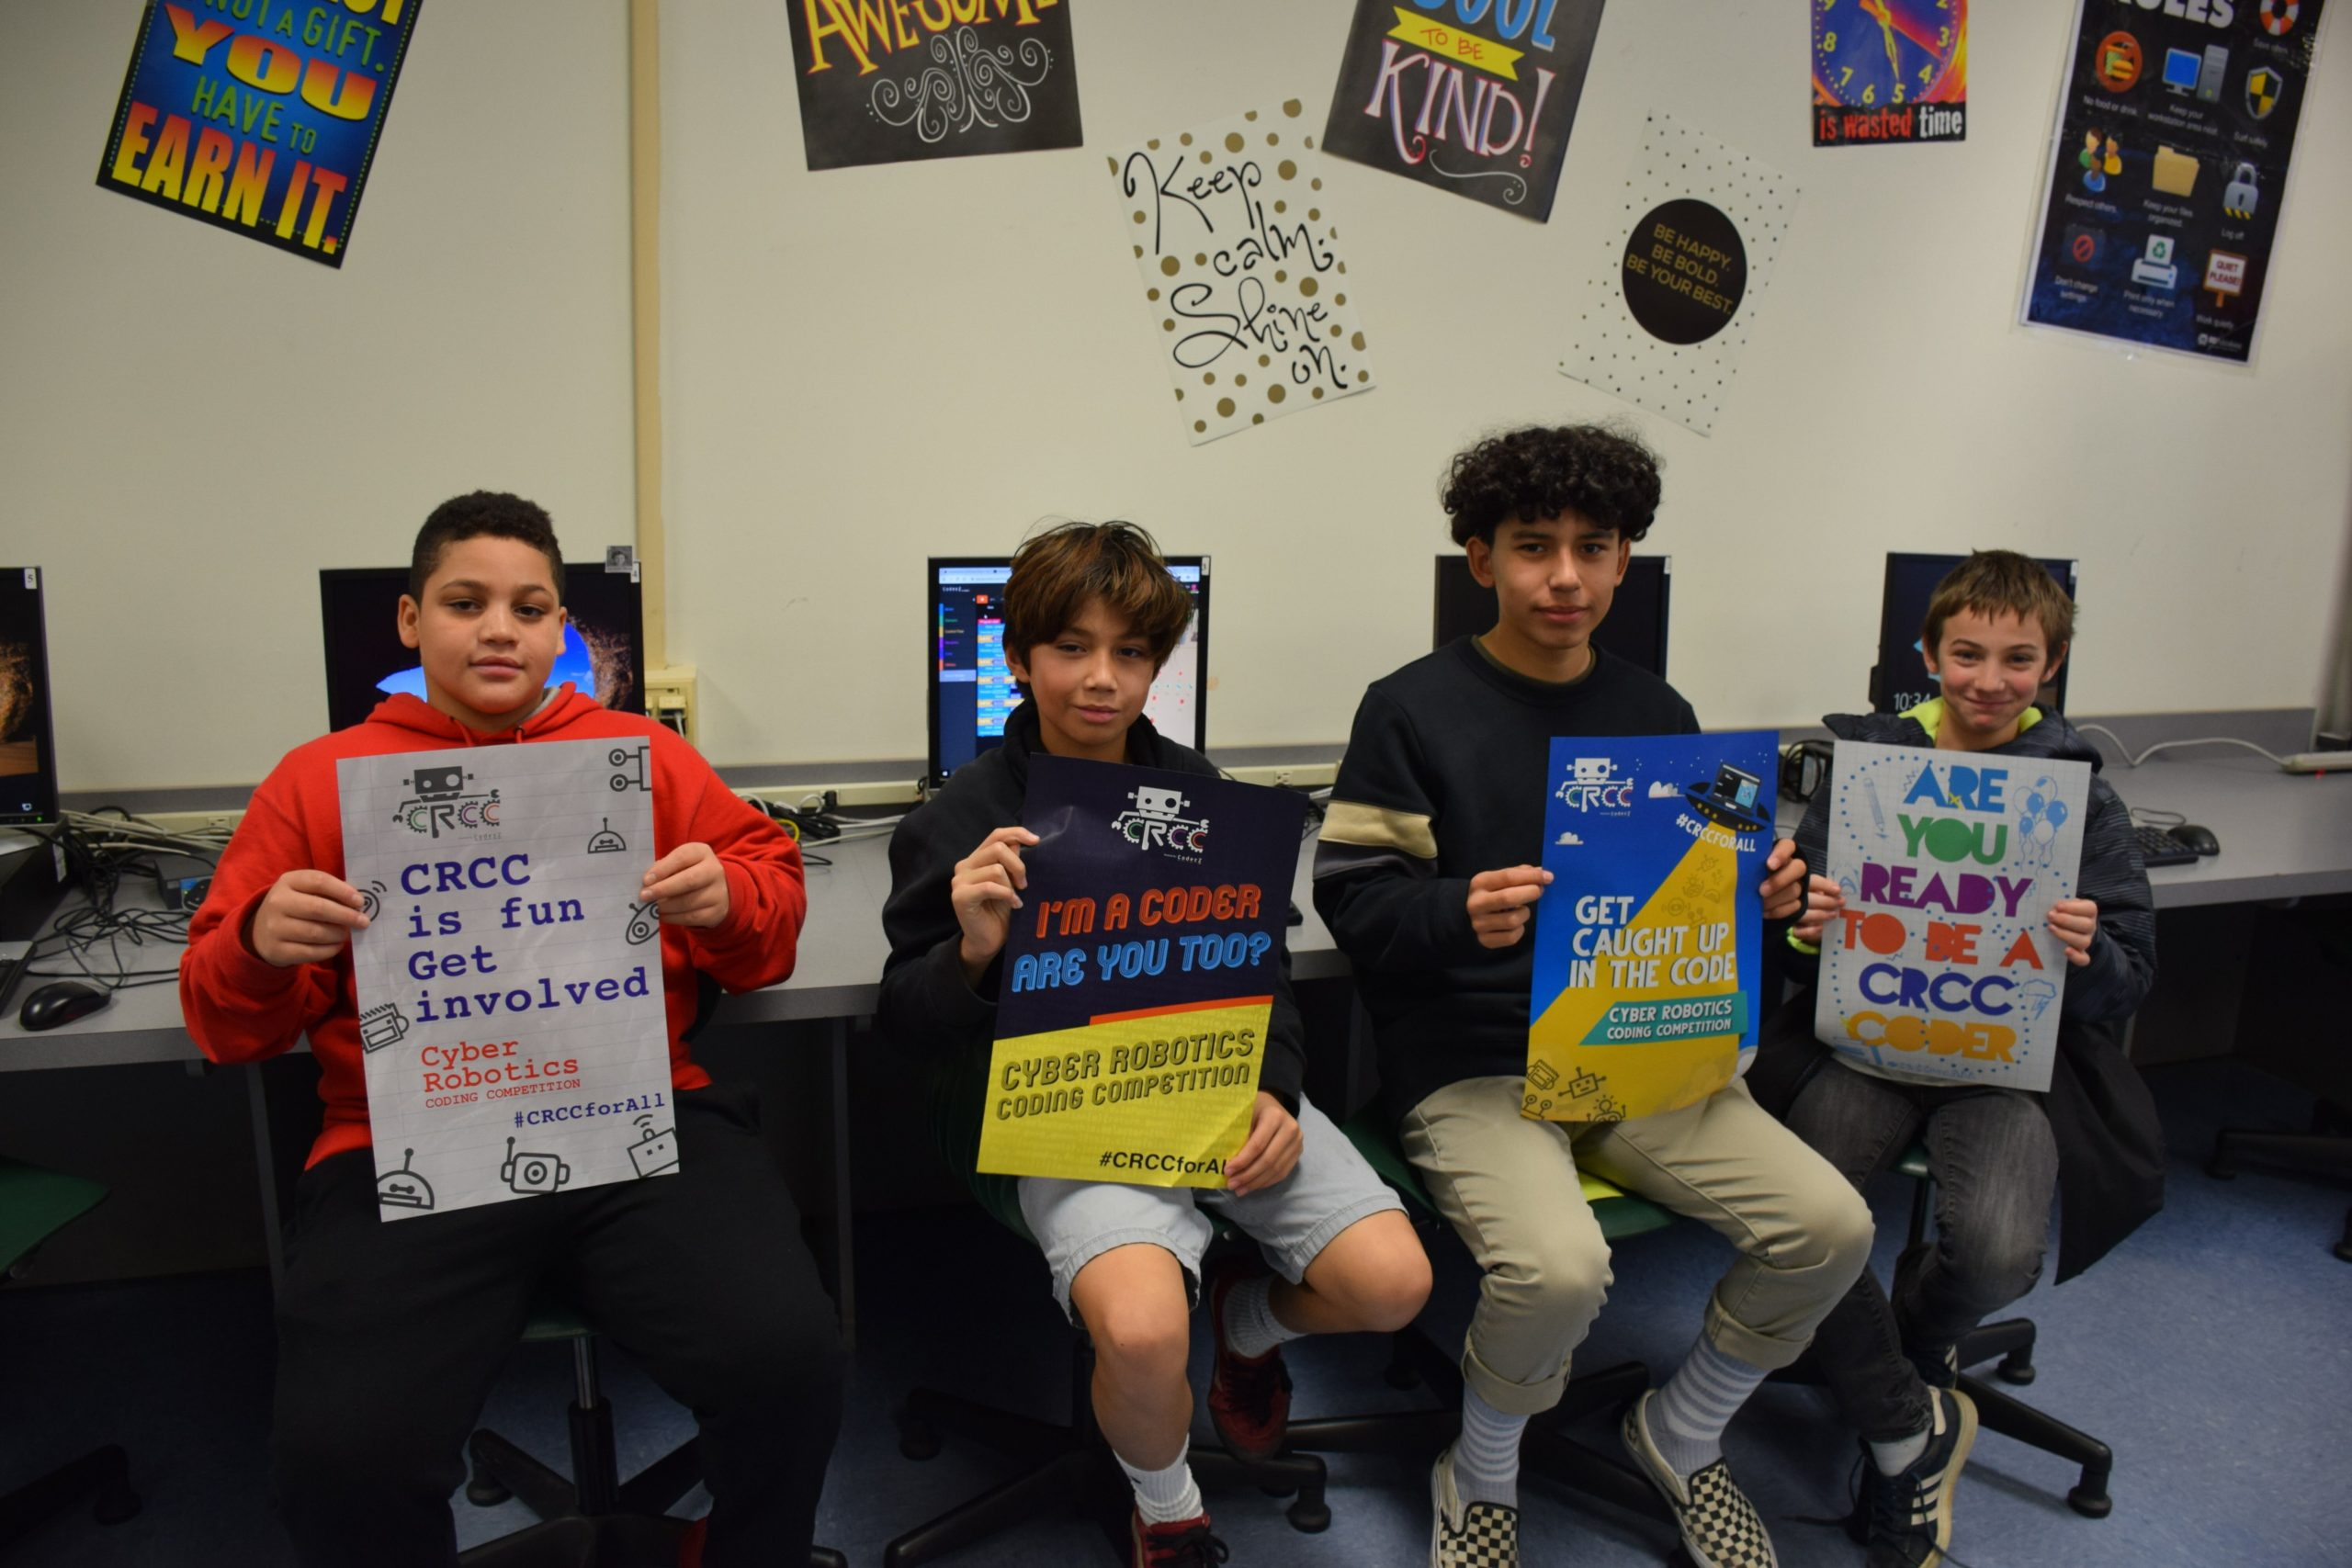 Southampton Intermediate School students, from left, Dyson Smith, Bryan Rosales, Danny Bustamante and Thomas Dunkirk will be representing their school at the CoderZ Cyber Robotics Coding Competition finals on December 13. To earn a spot in the competition, the Southampton seventh and eighth graders, under the direction of teachers Mei-Lynn Guerrero and Michelle Antonucci, competed against 30 schools in several rounds of timed, online coding qualification challenges.